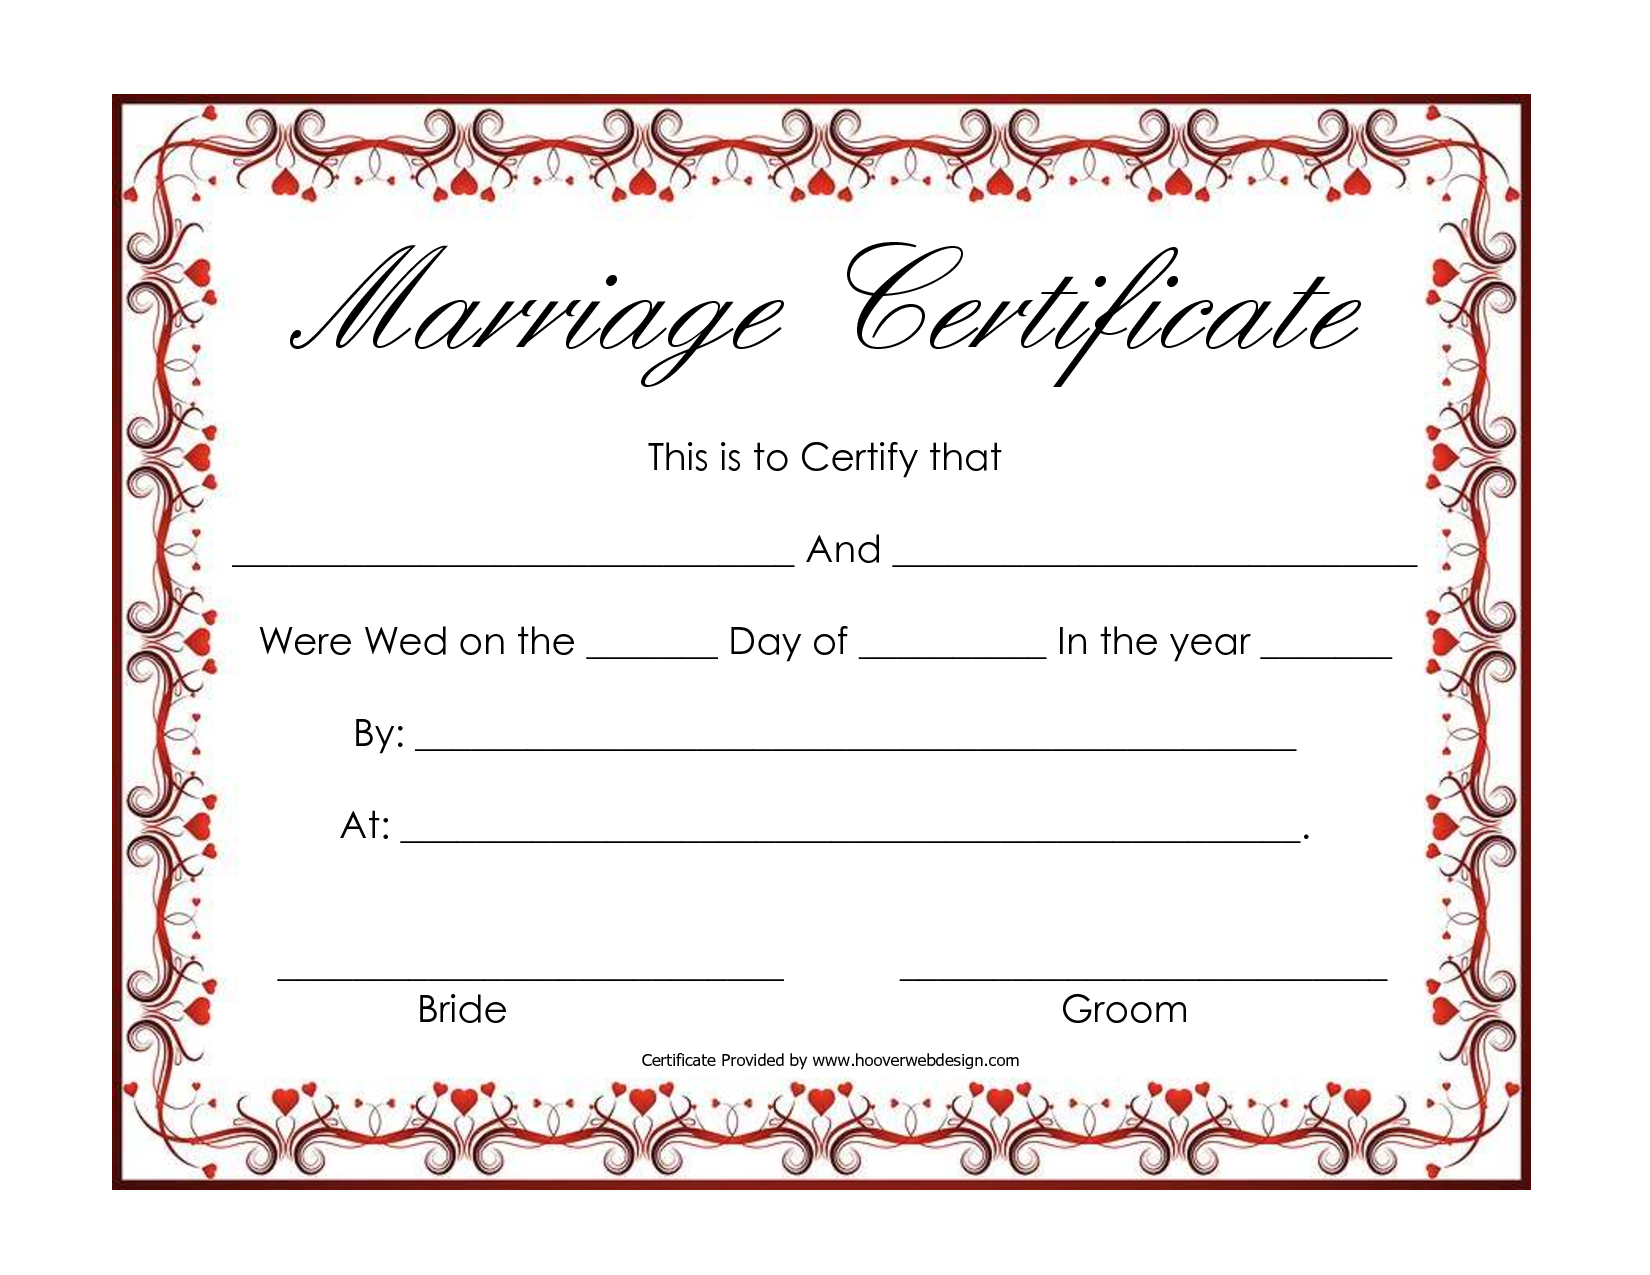 Free Blank Marriage Certificates | Printable Marriage Certificate - Free Printable Wedding Certificates